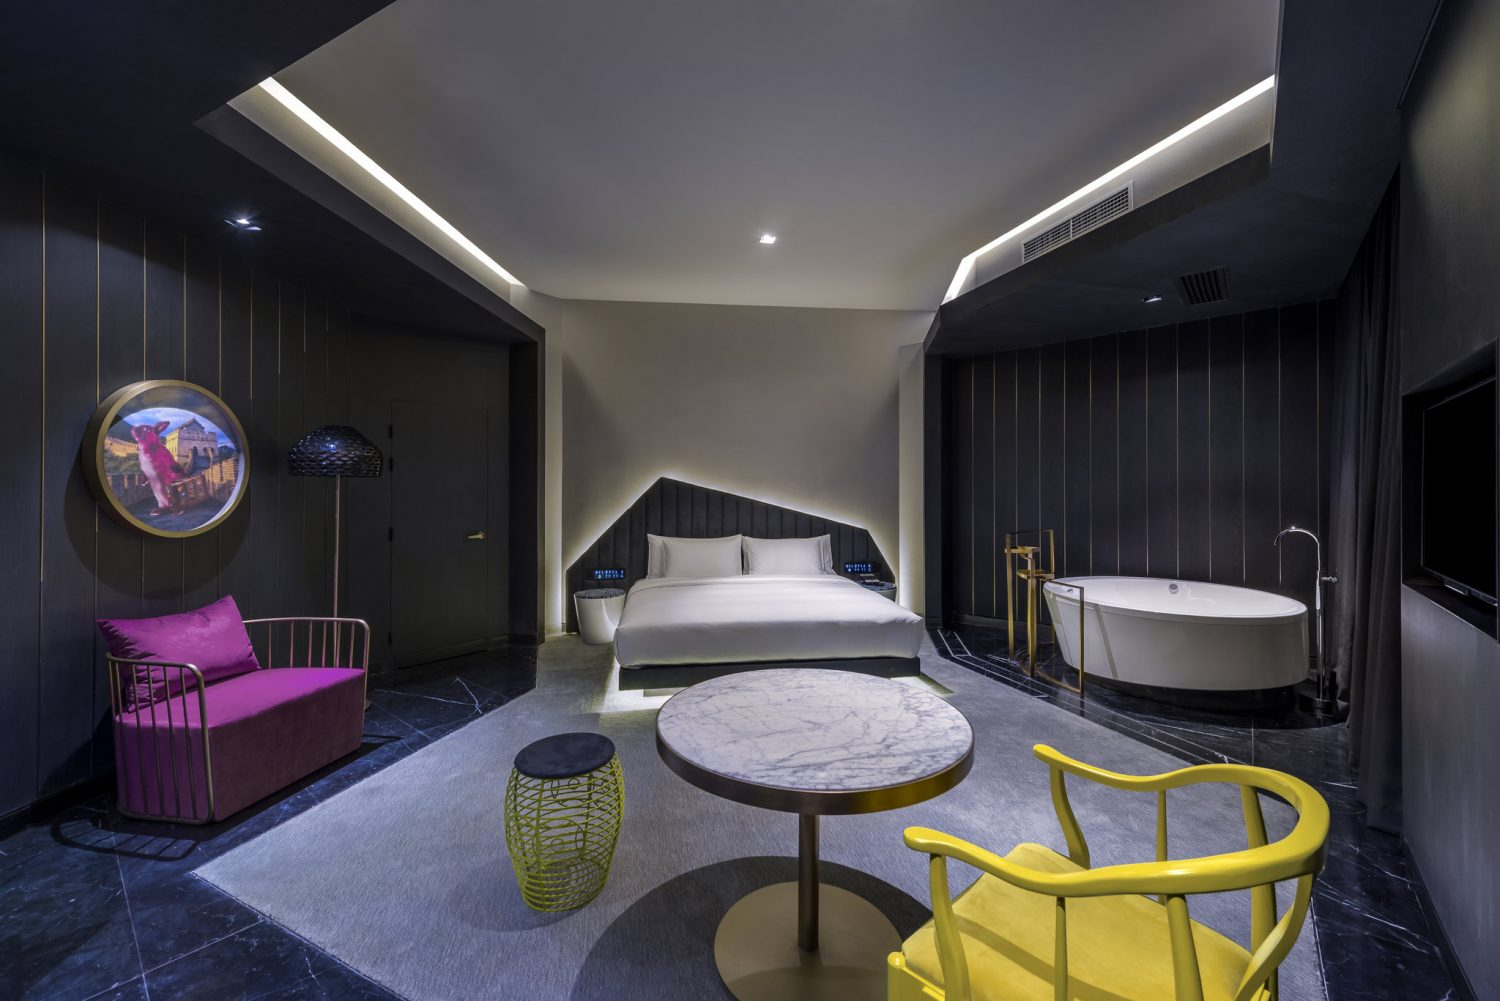 Beijing Design Guide beijing design guide BEIJING DESIGN GUIDE 14 VUE Courtyard Room S